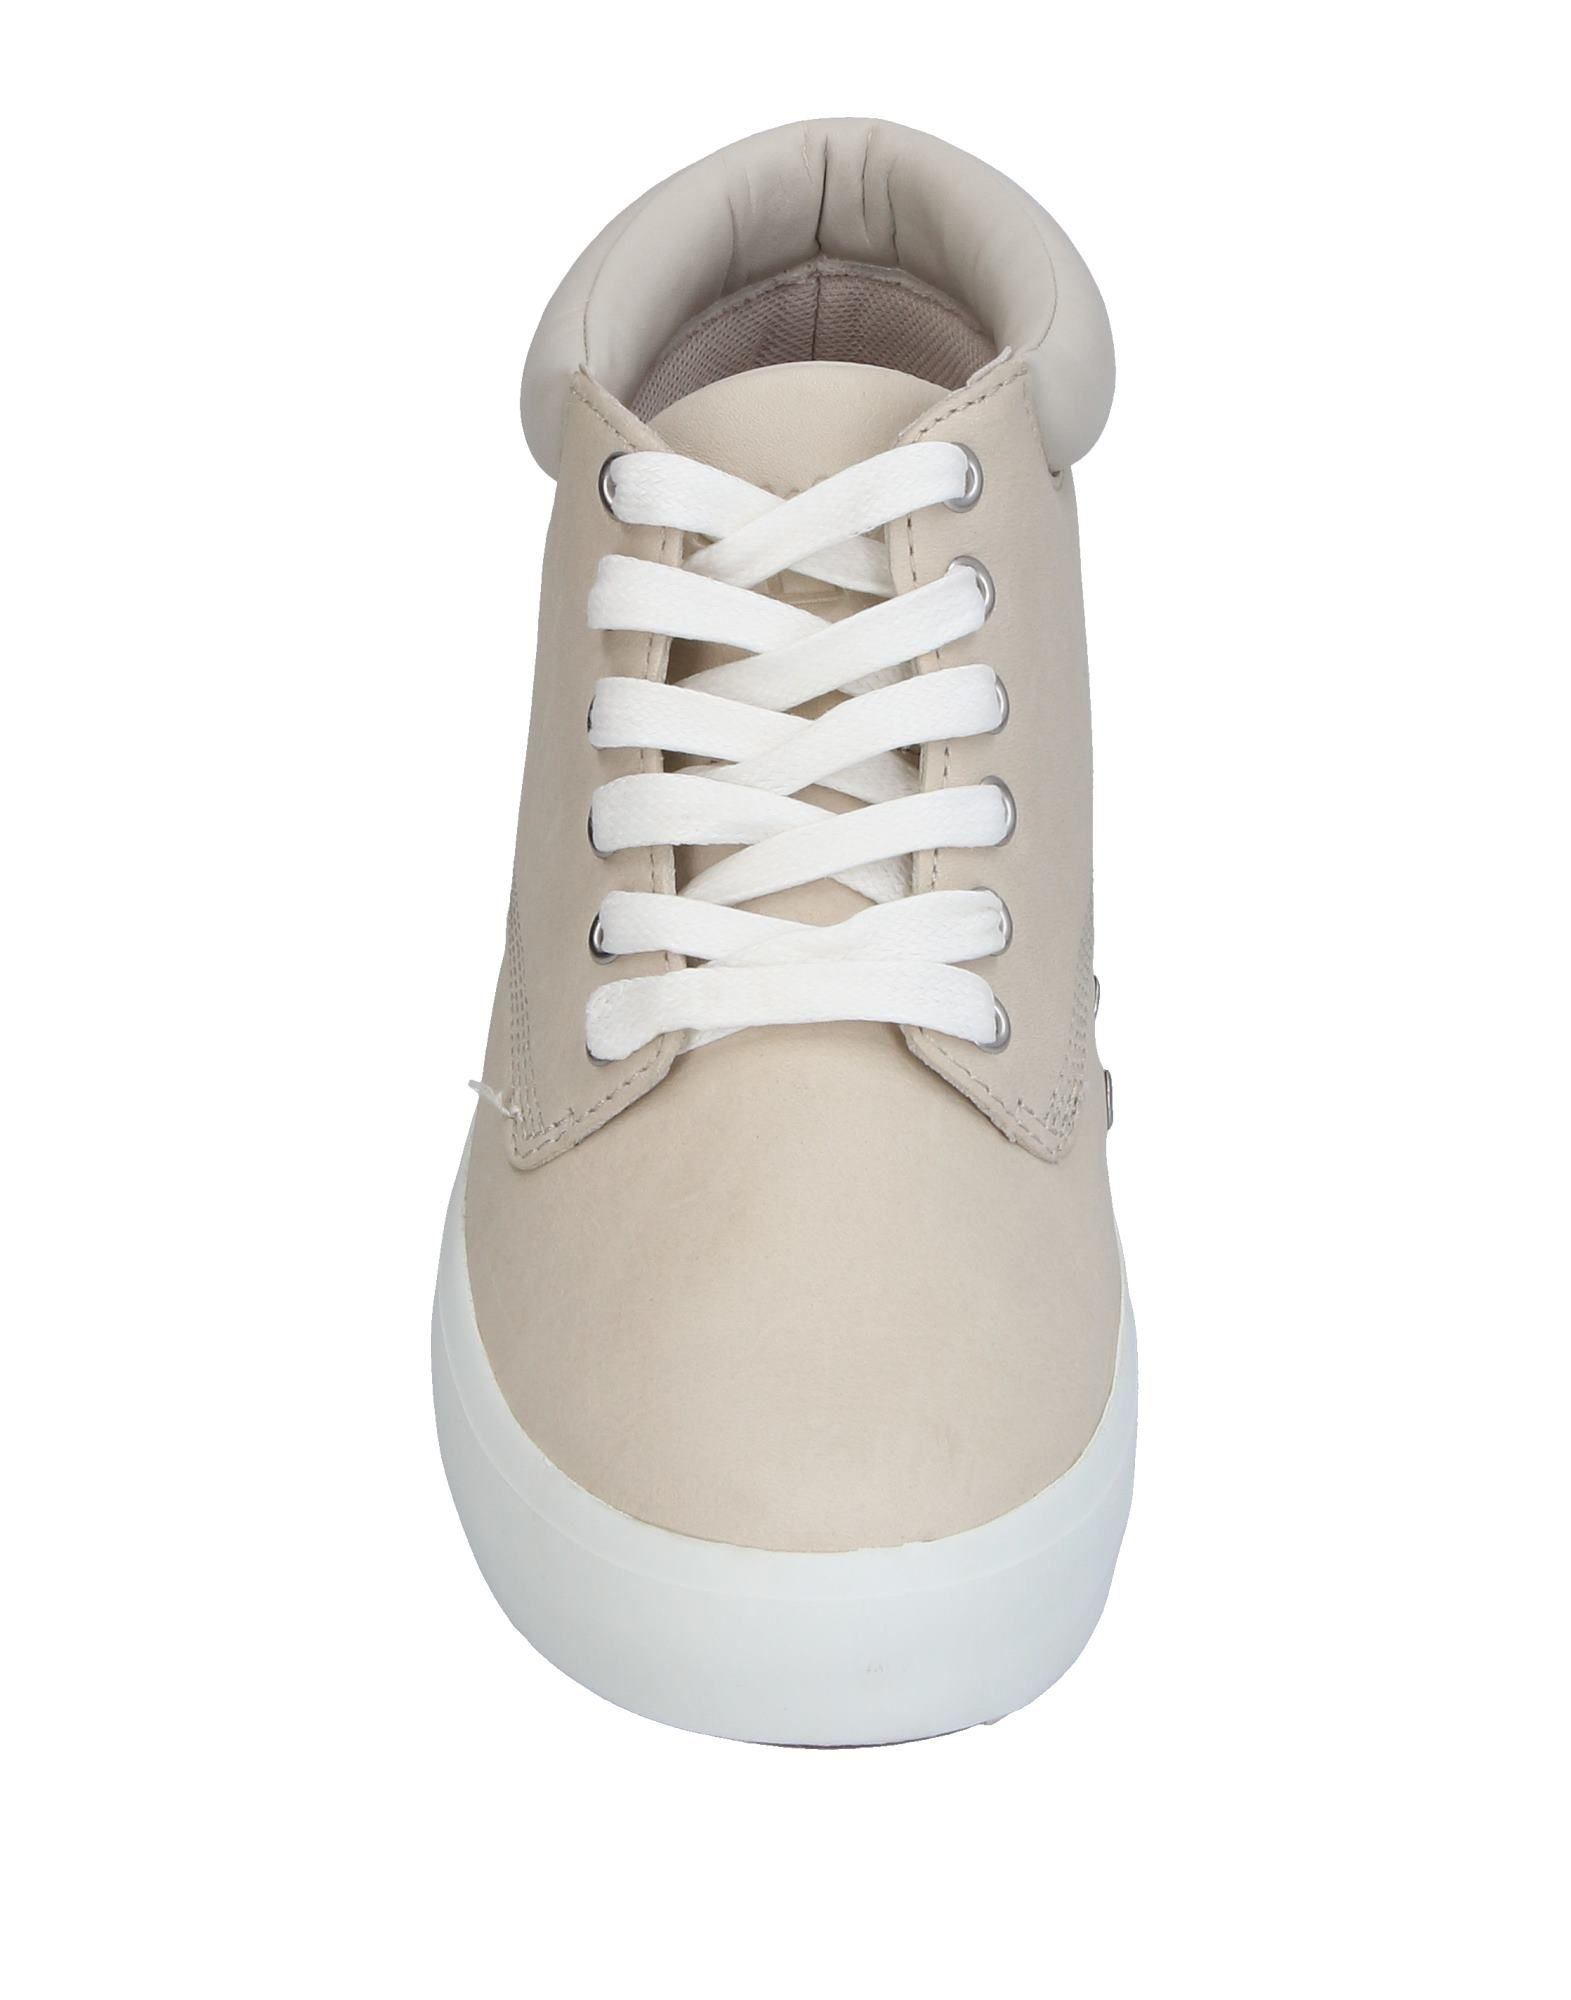 Sneakers Timberland Femme - Sneakers Timberland sur